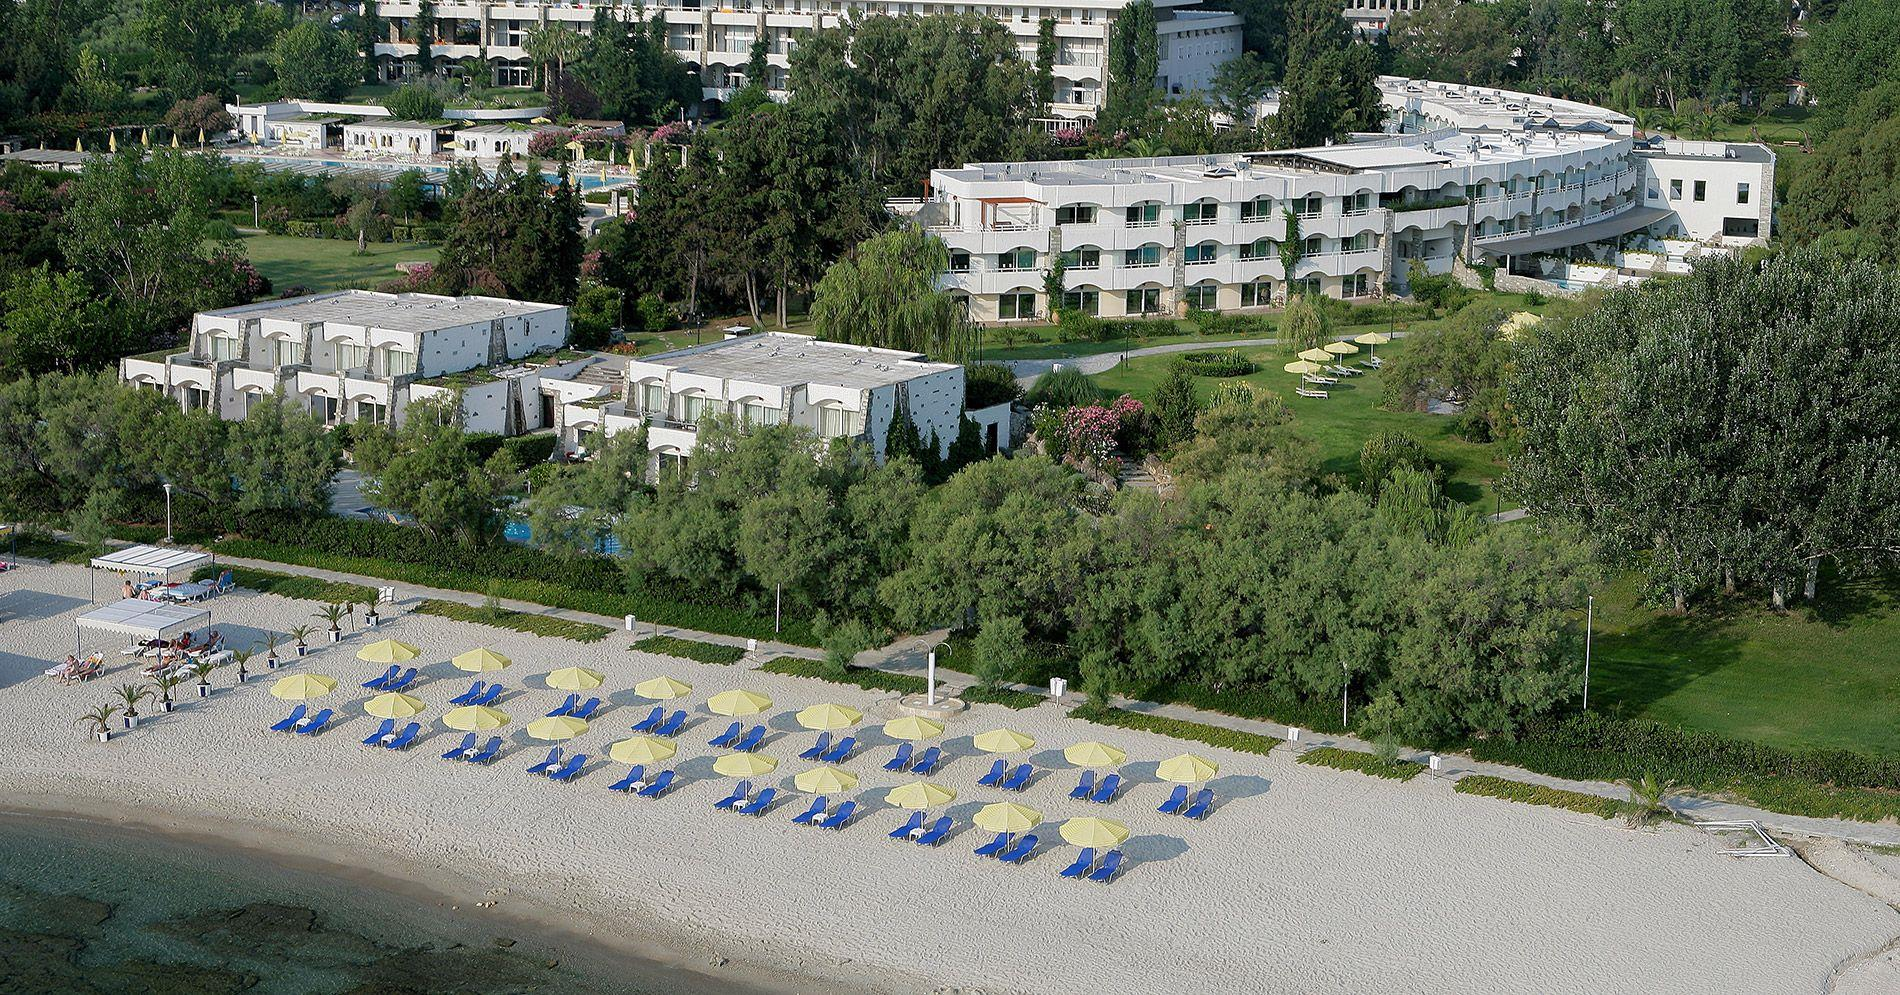 g-hotels-theophano-imperial-palace-genel-0011